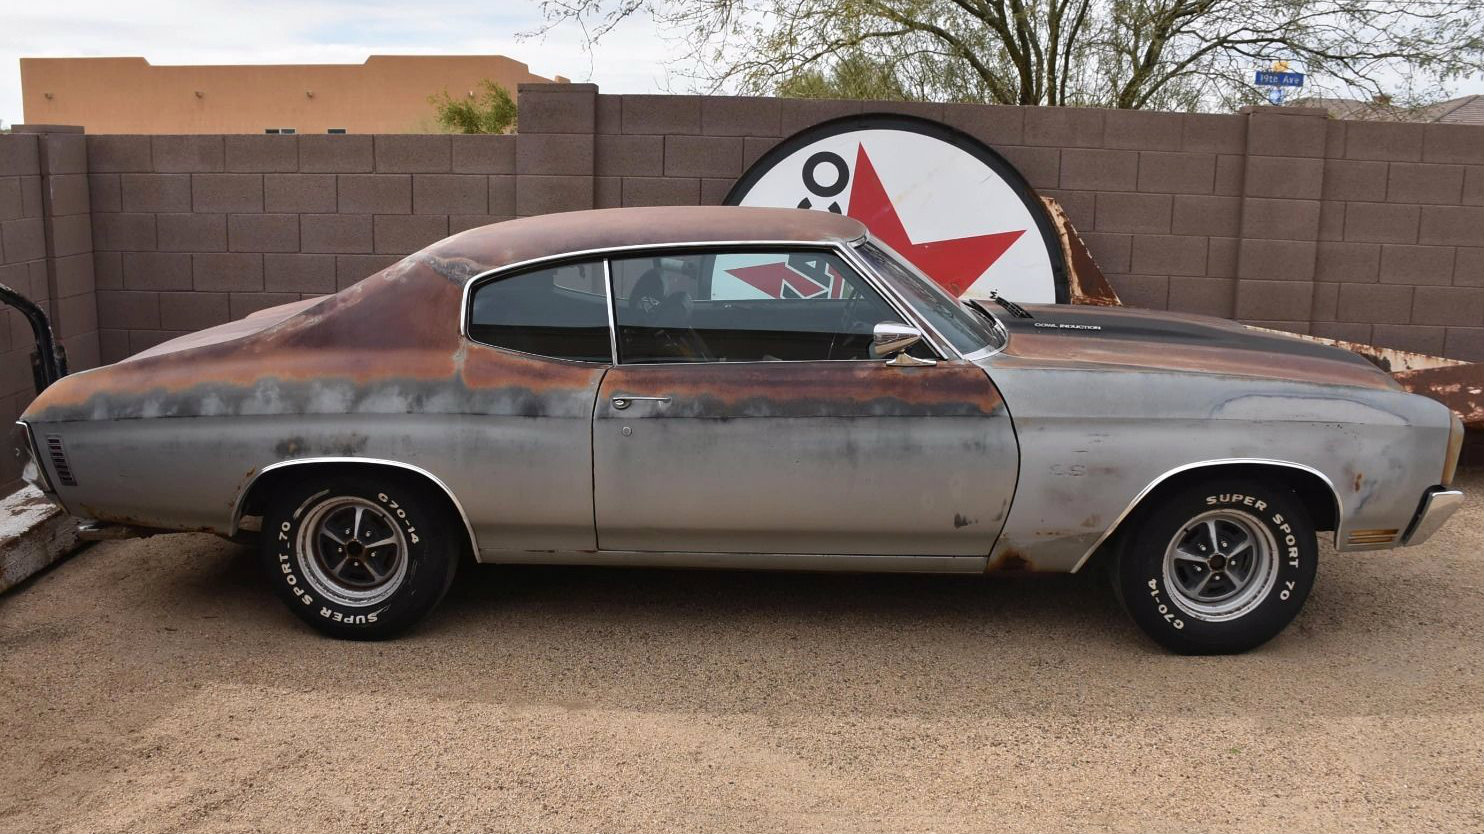 Best Barn Find Ever? 1970 Chevrolet Chevelle